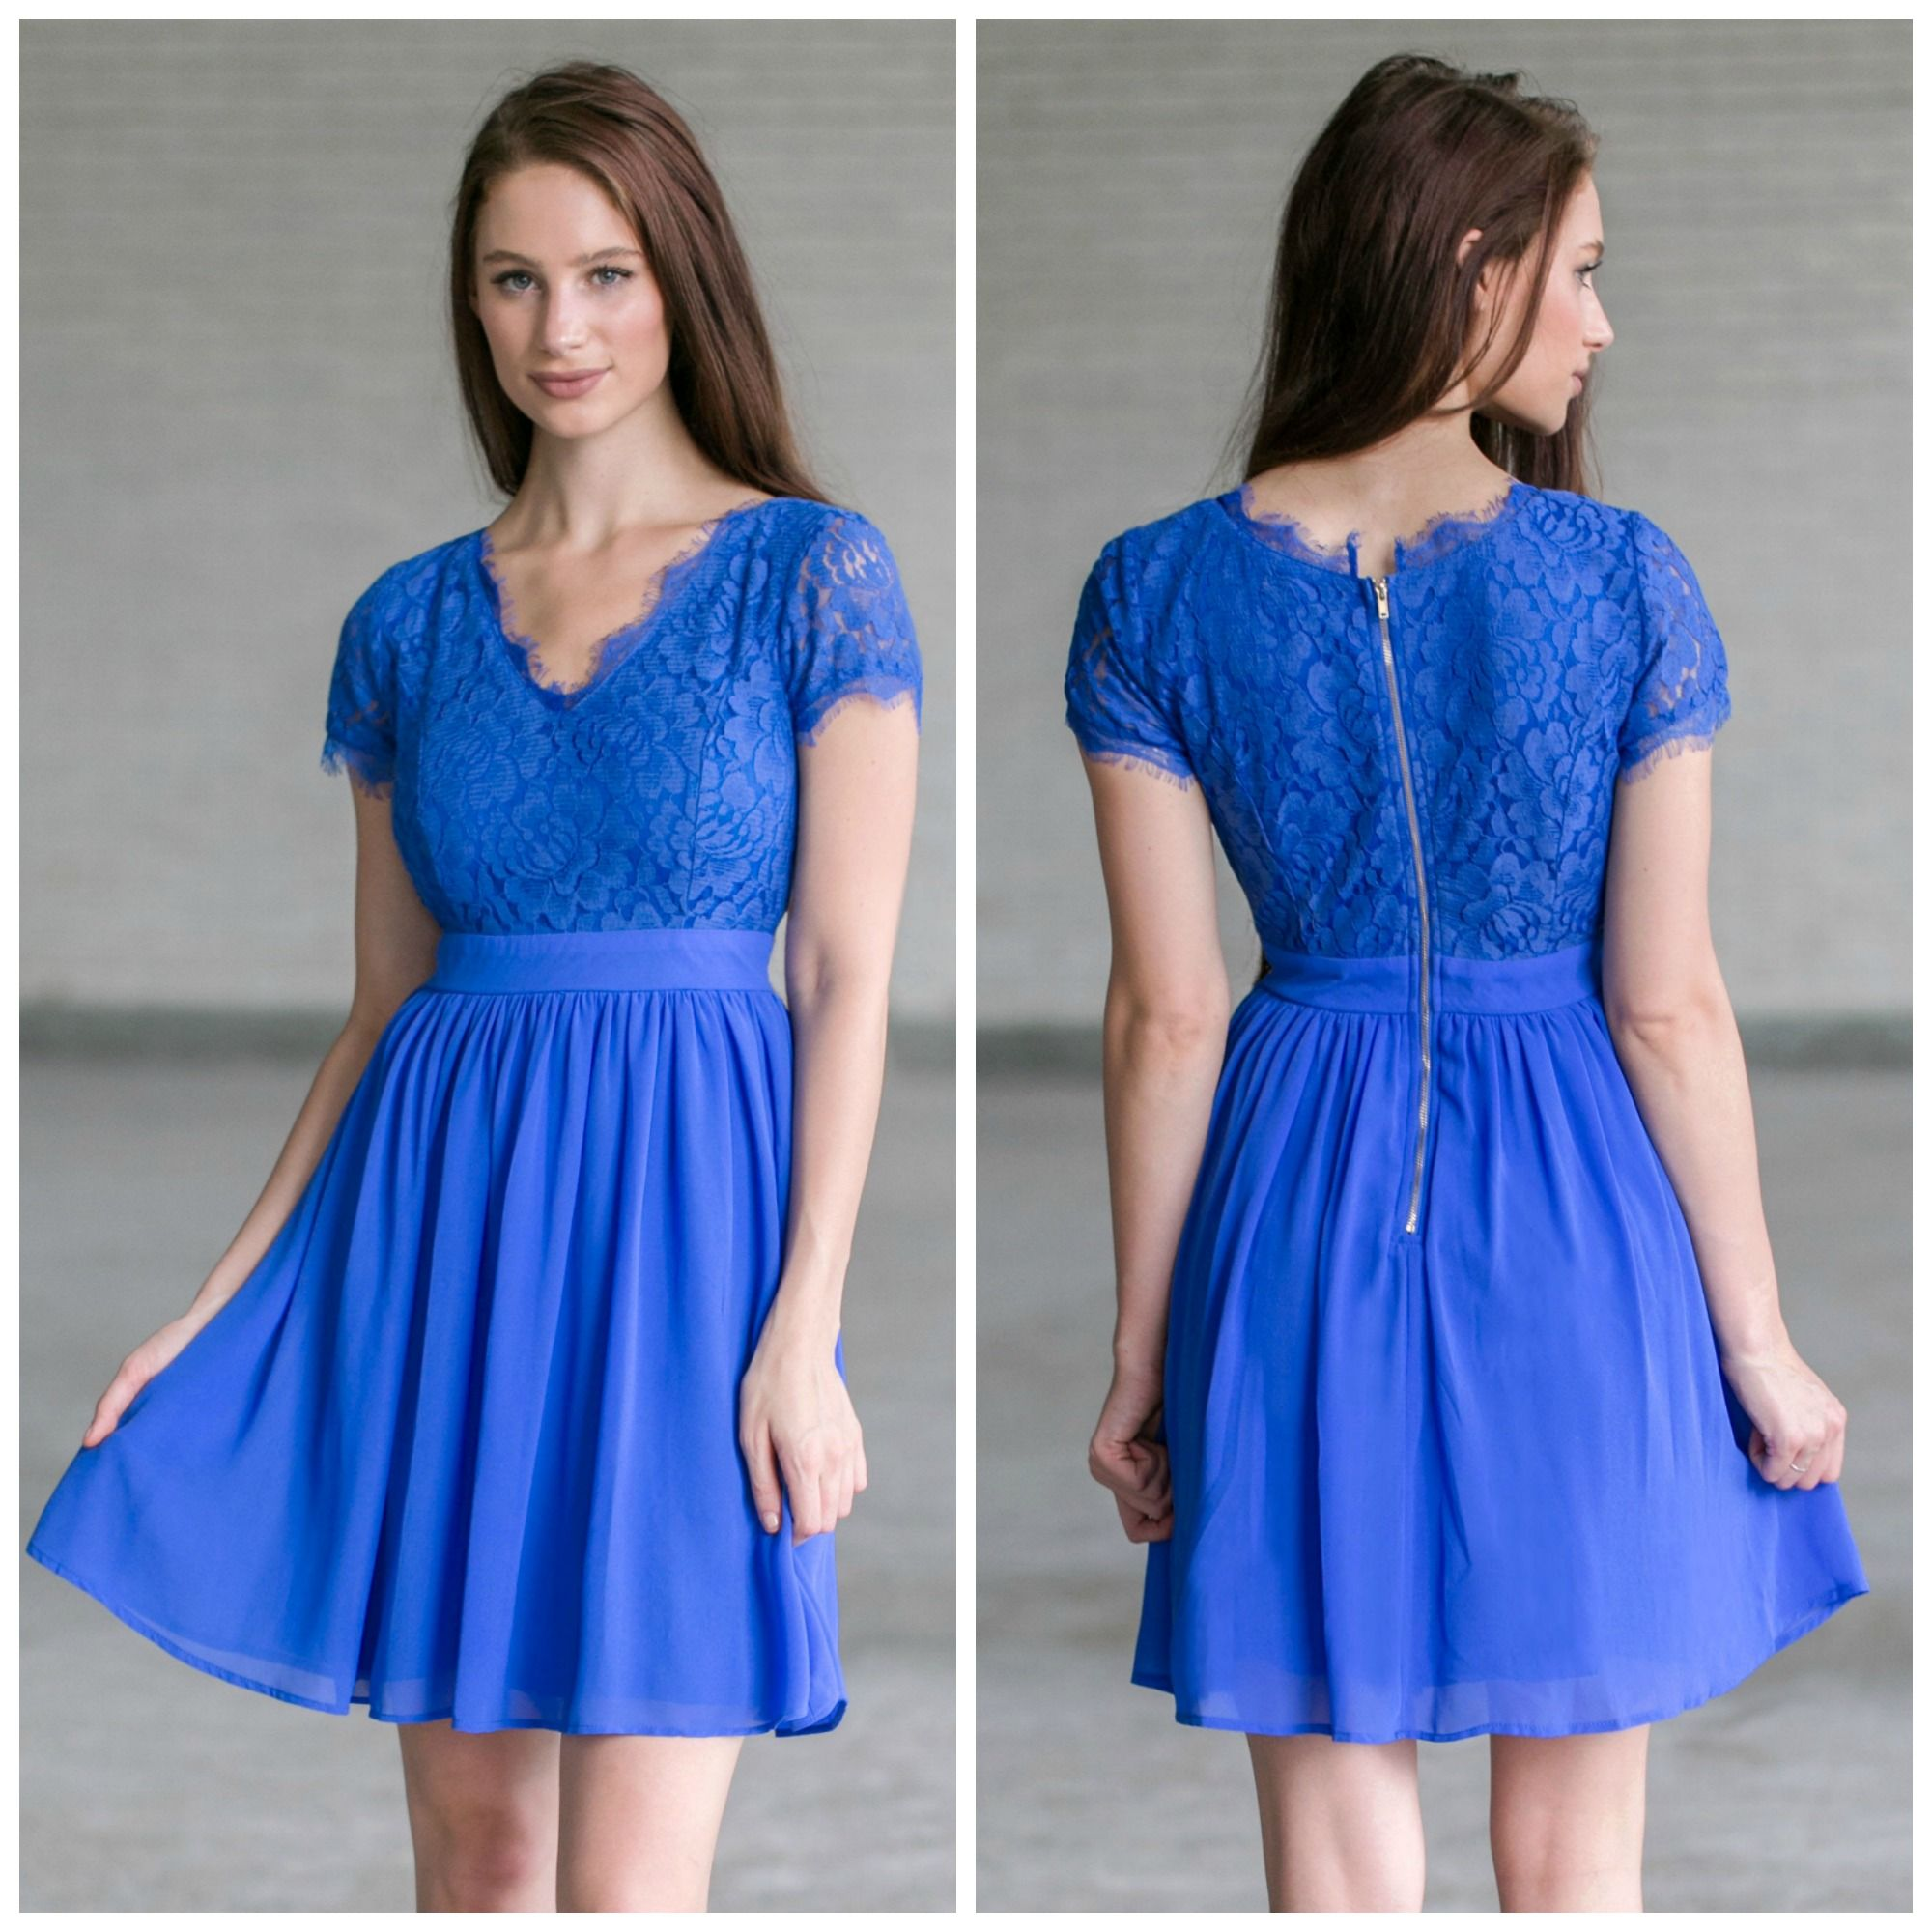 We love the bright blue color of this lace dress! http://ss1.us/a ...